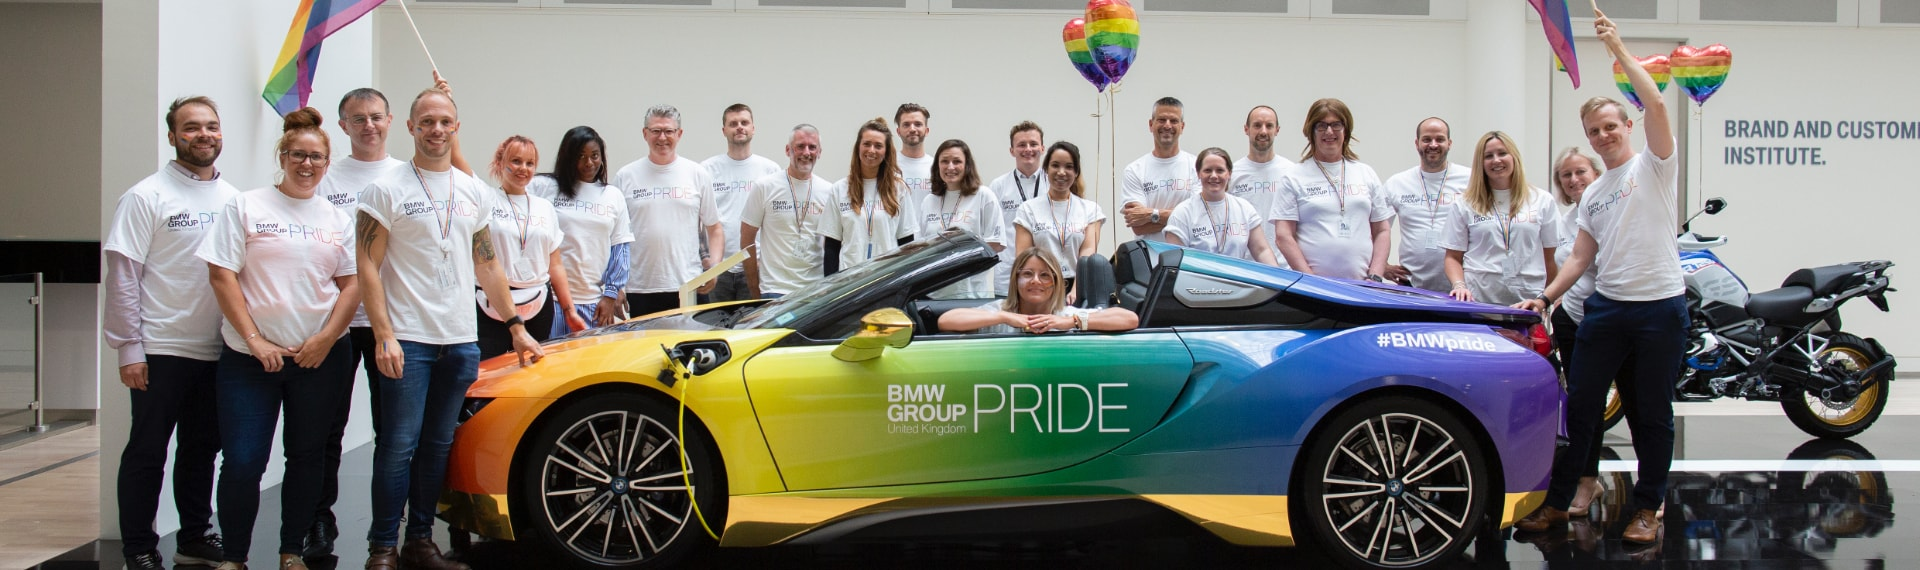 BMW Pride Team photo